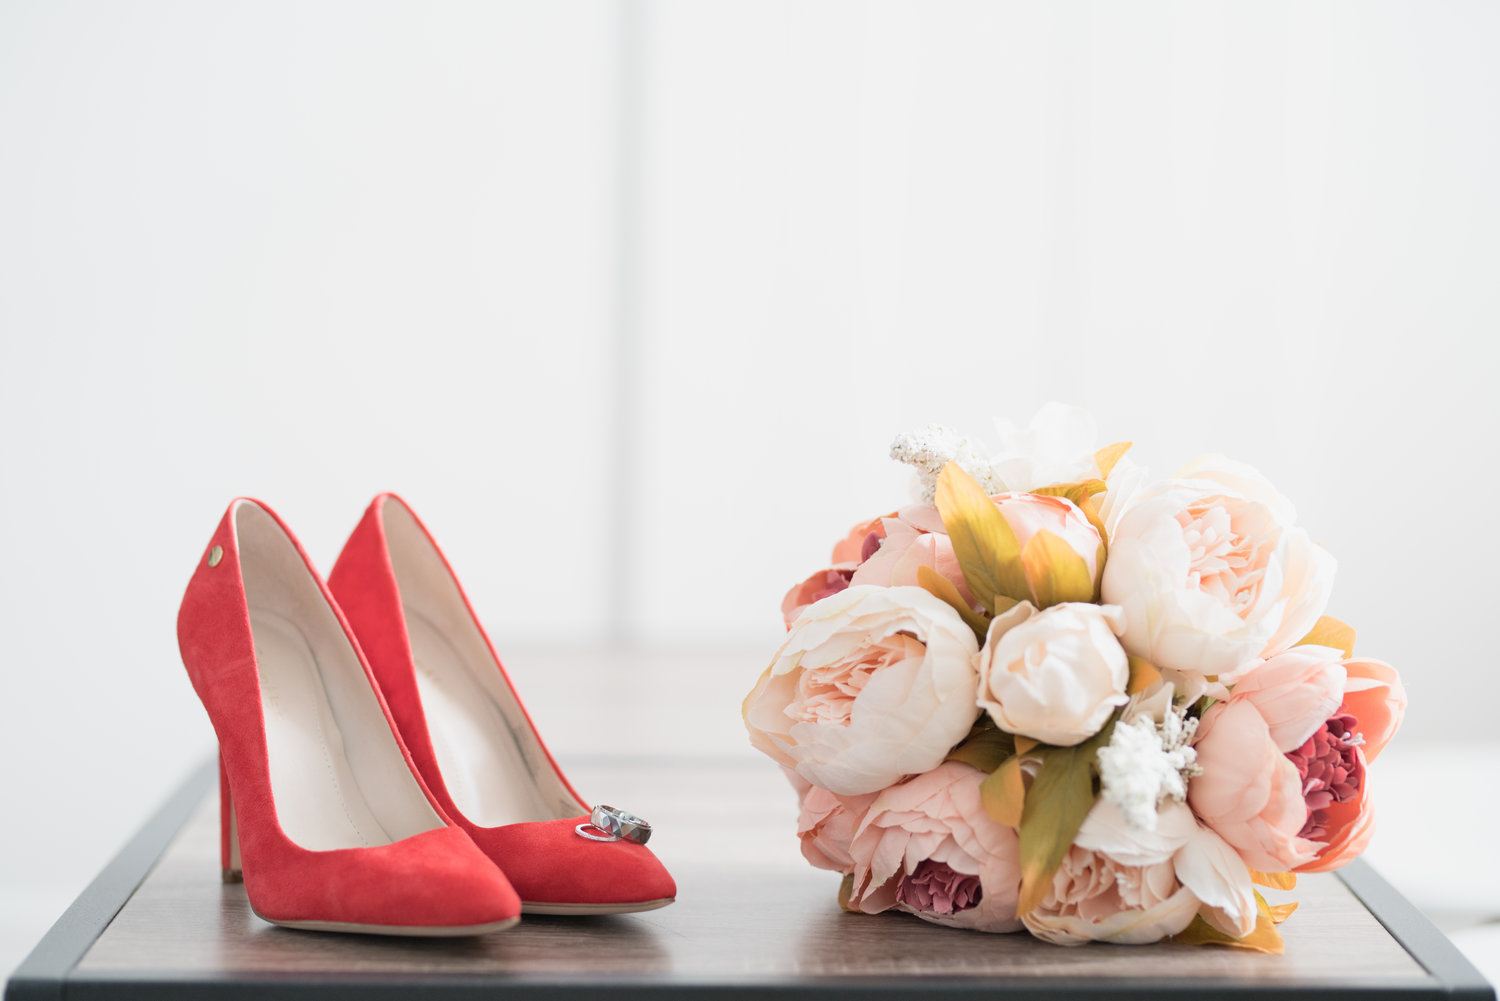 As the Bride and Groom continued to get ready, we had the opportunity to capture the important little details. Anh chose beautiful red stilettos to compliment her grecian styled A-line off the shoulder chiffon wedding gown. The simple touch of pink captured in her bouquet of peonies was an added plus.